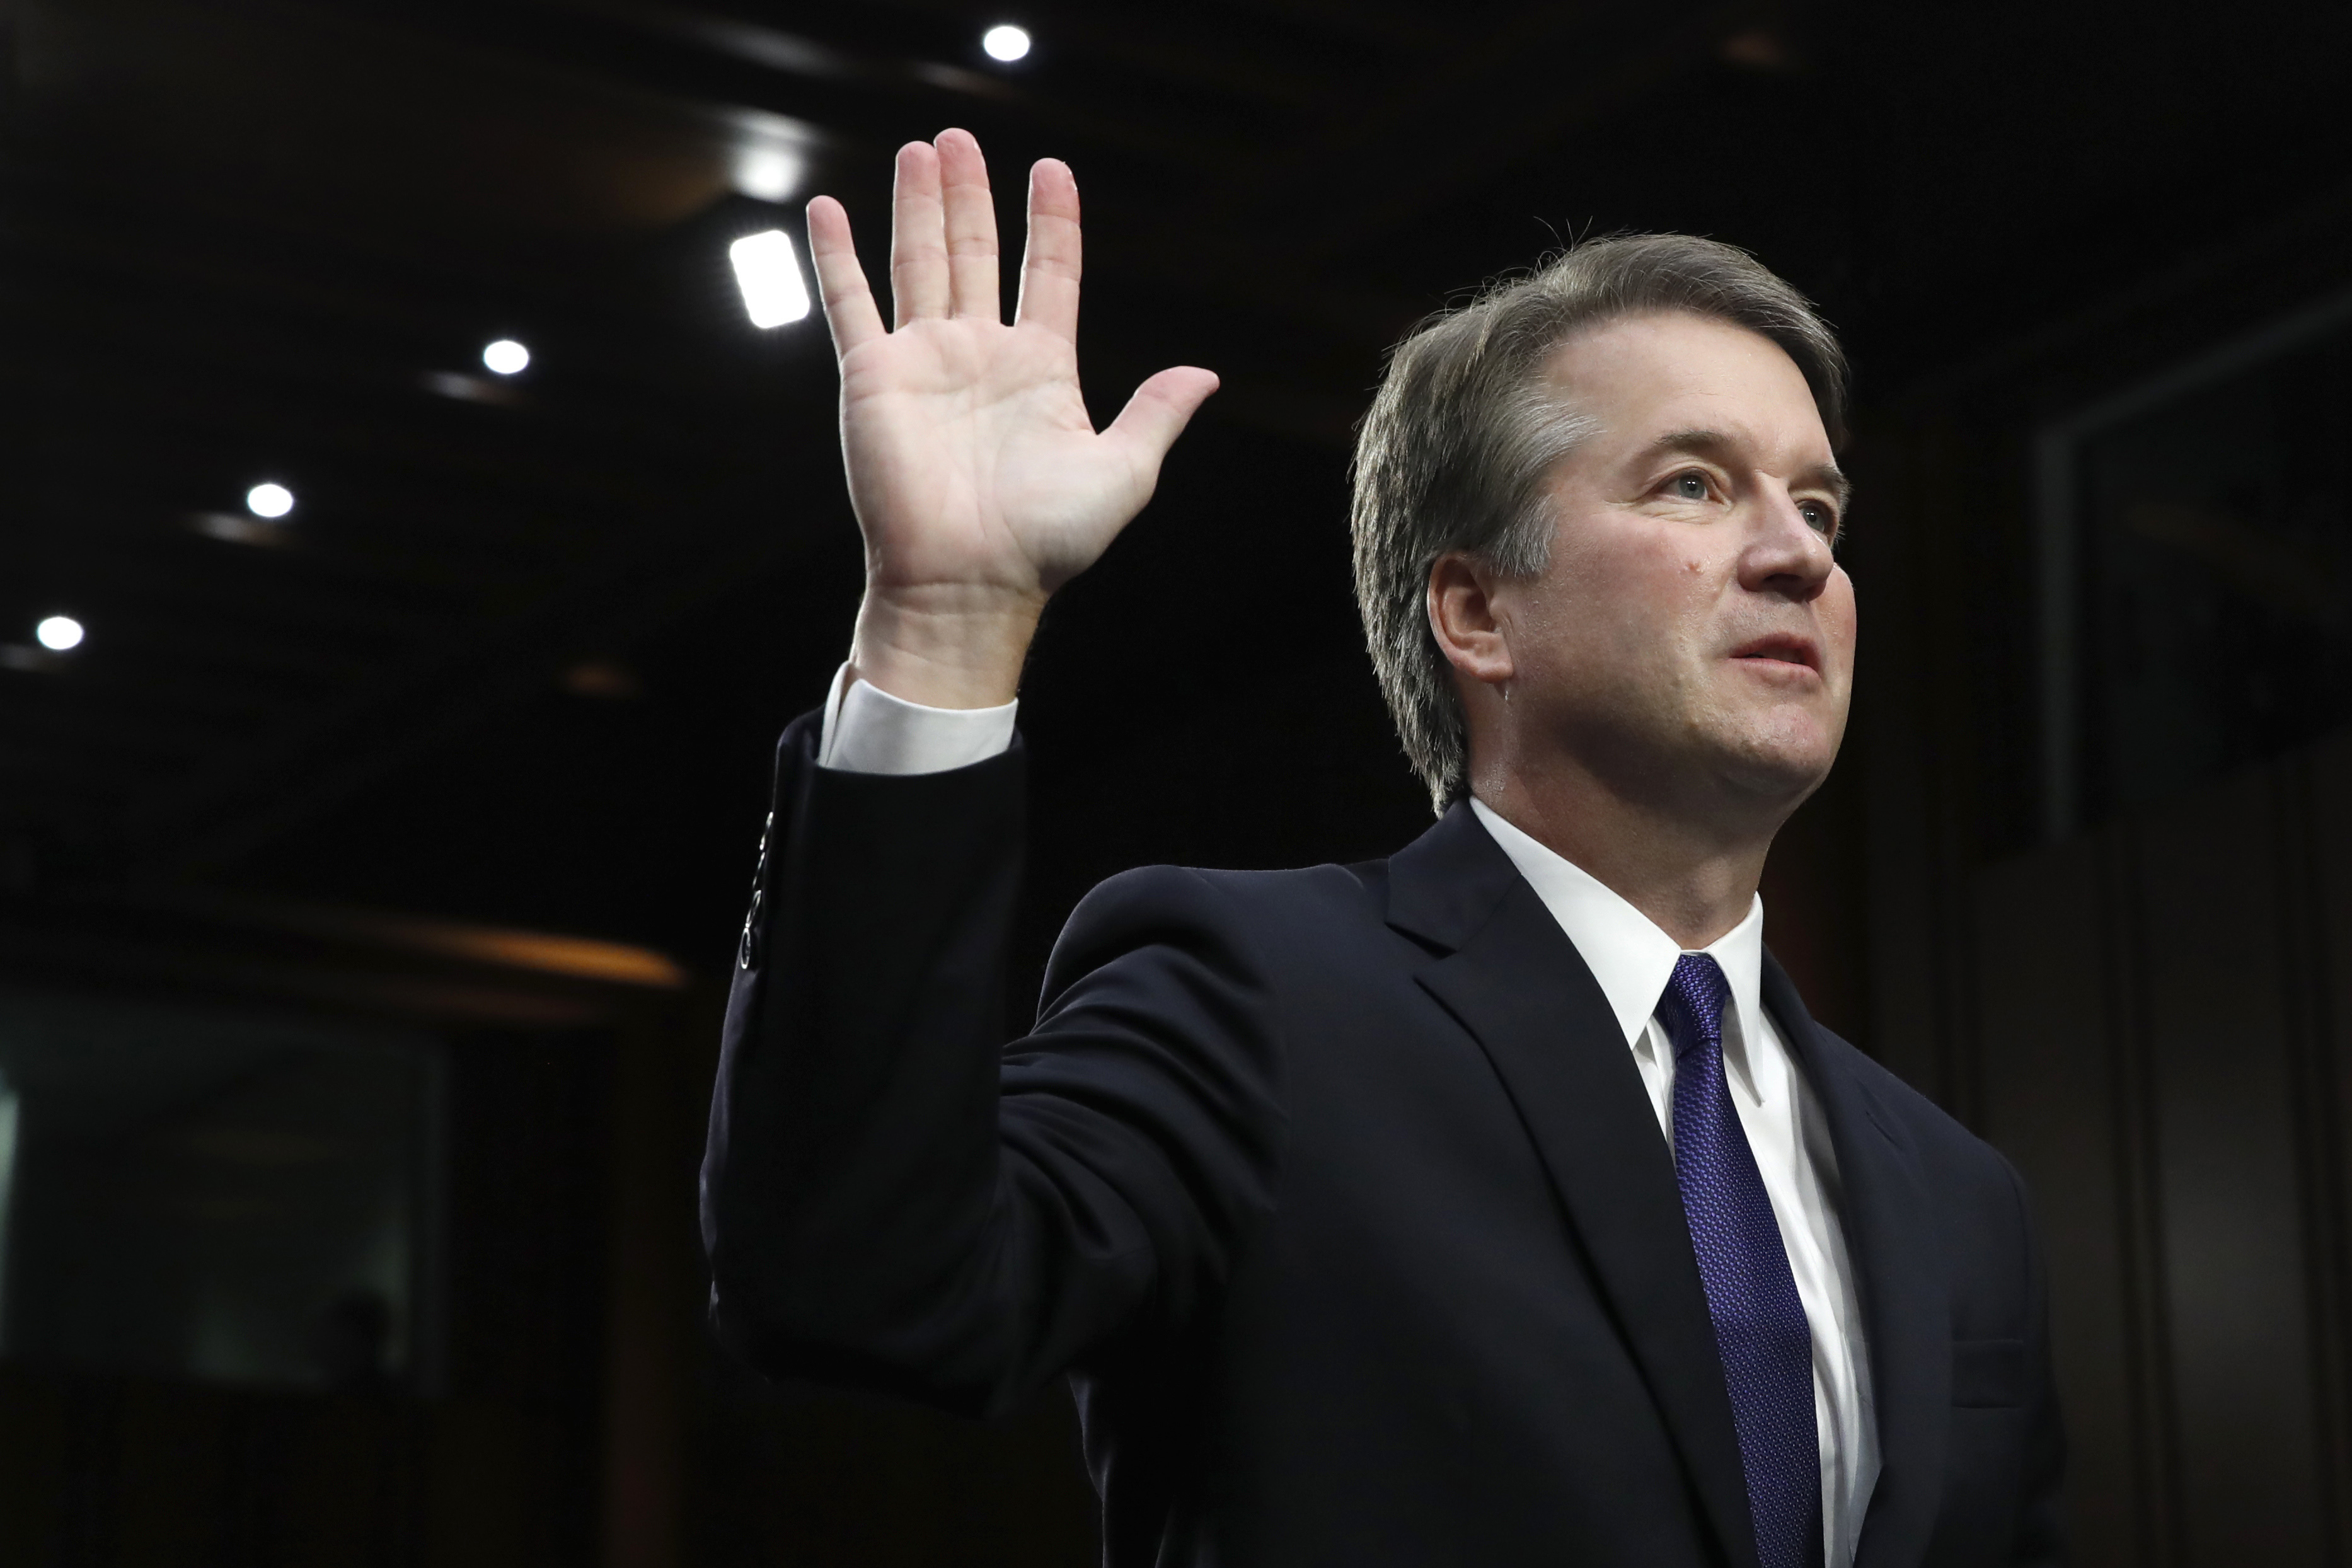 Brett Kavanaugh swearing in